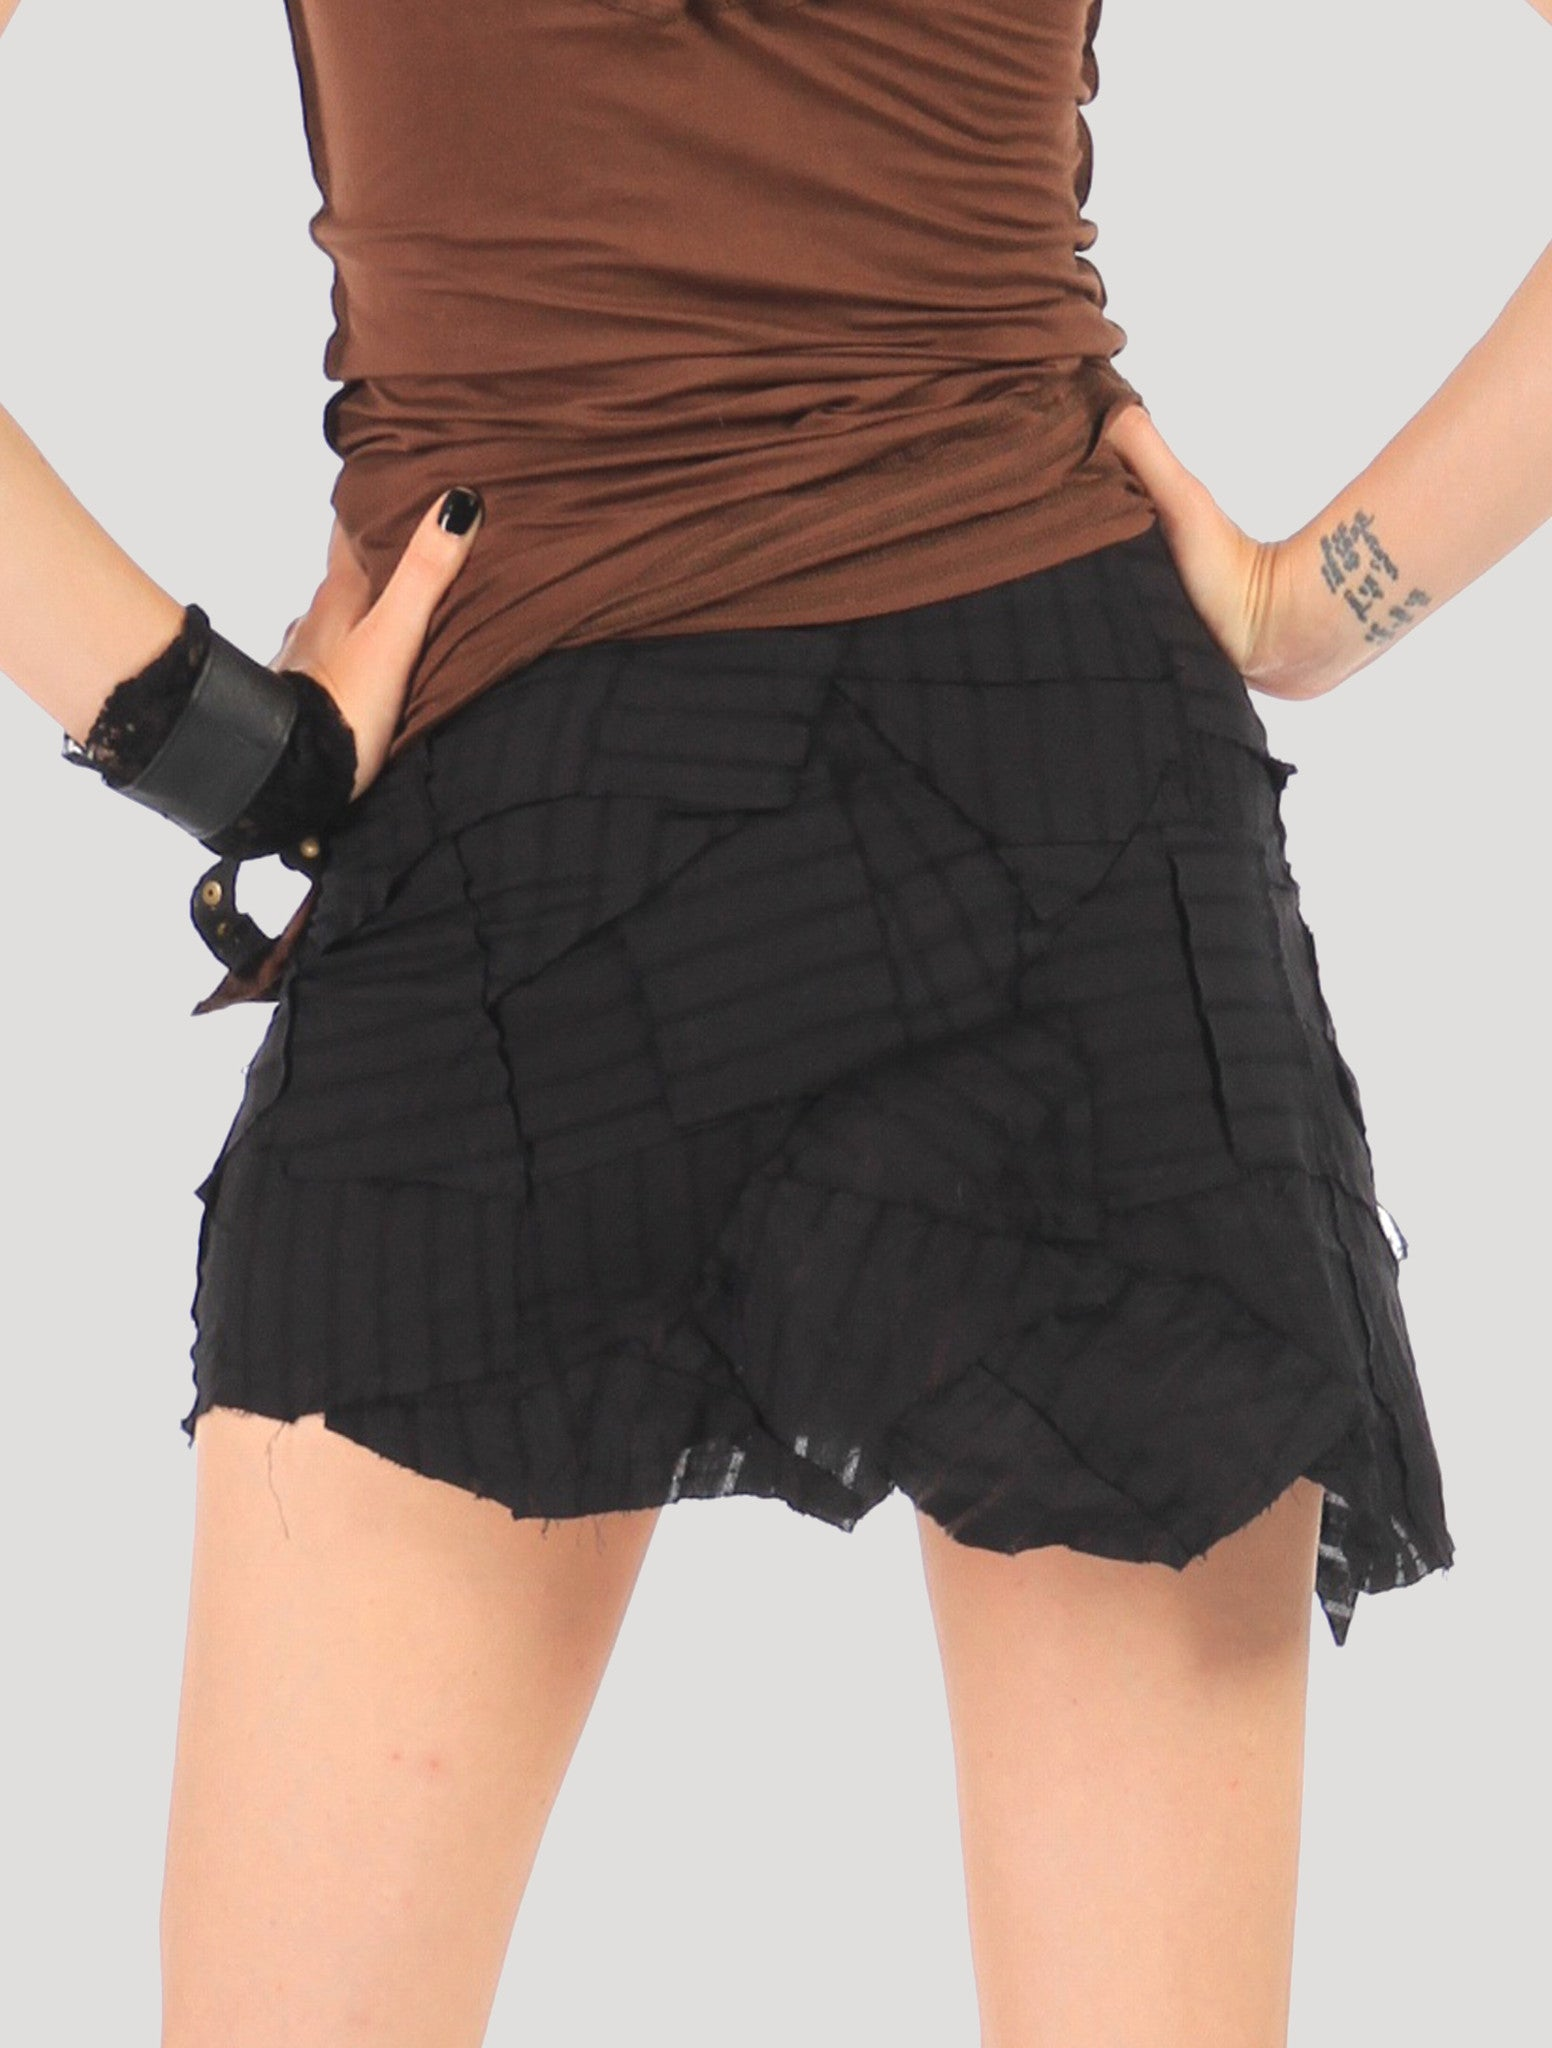 Pecoa Mini Skirt - Psylo